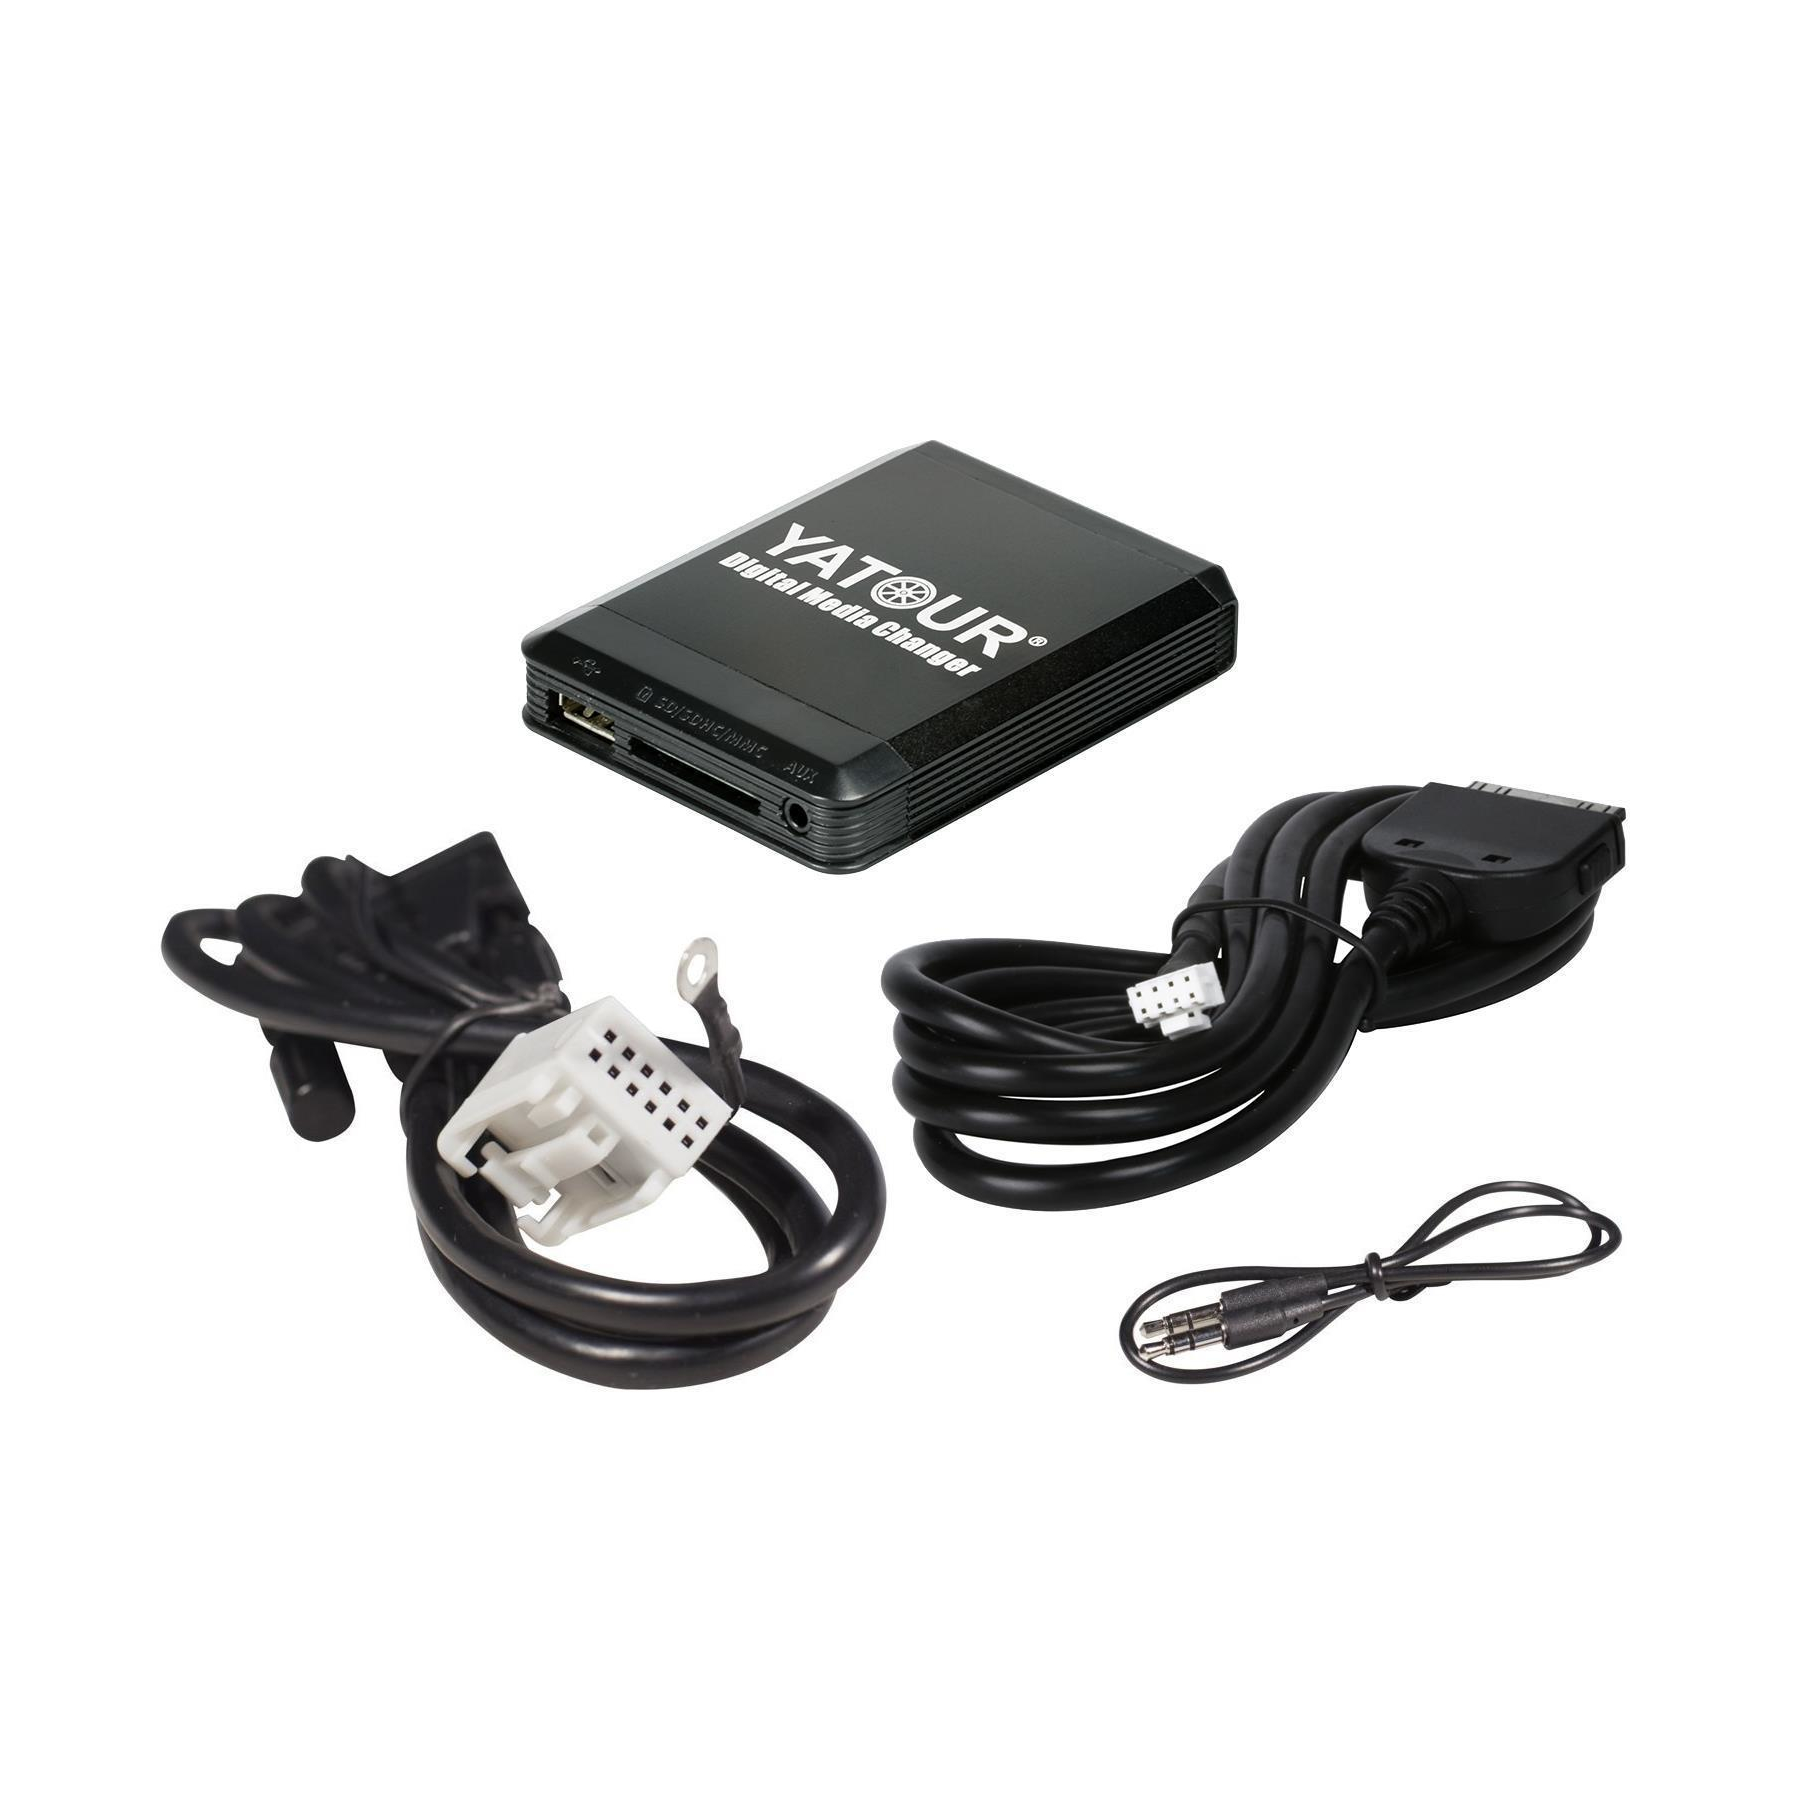 Yatour USB SD iPhone iPod iPad AUX Adapter VW, Audi, Seat Skoda + Ausbauhaken